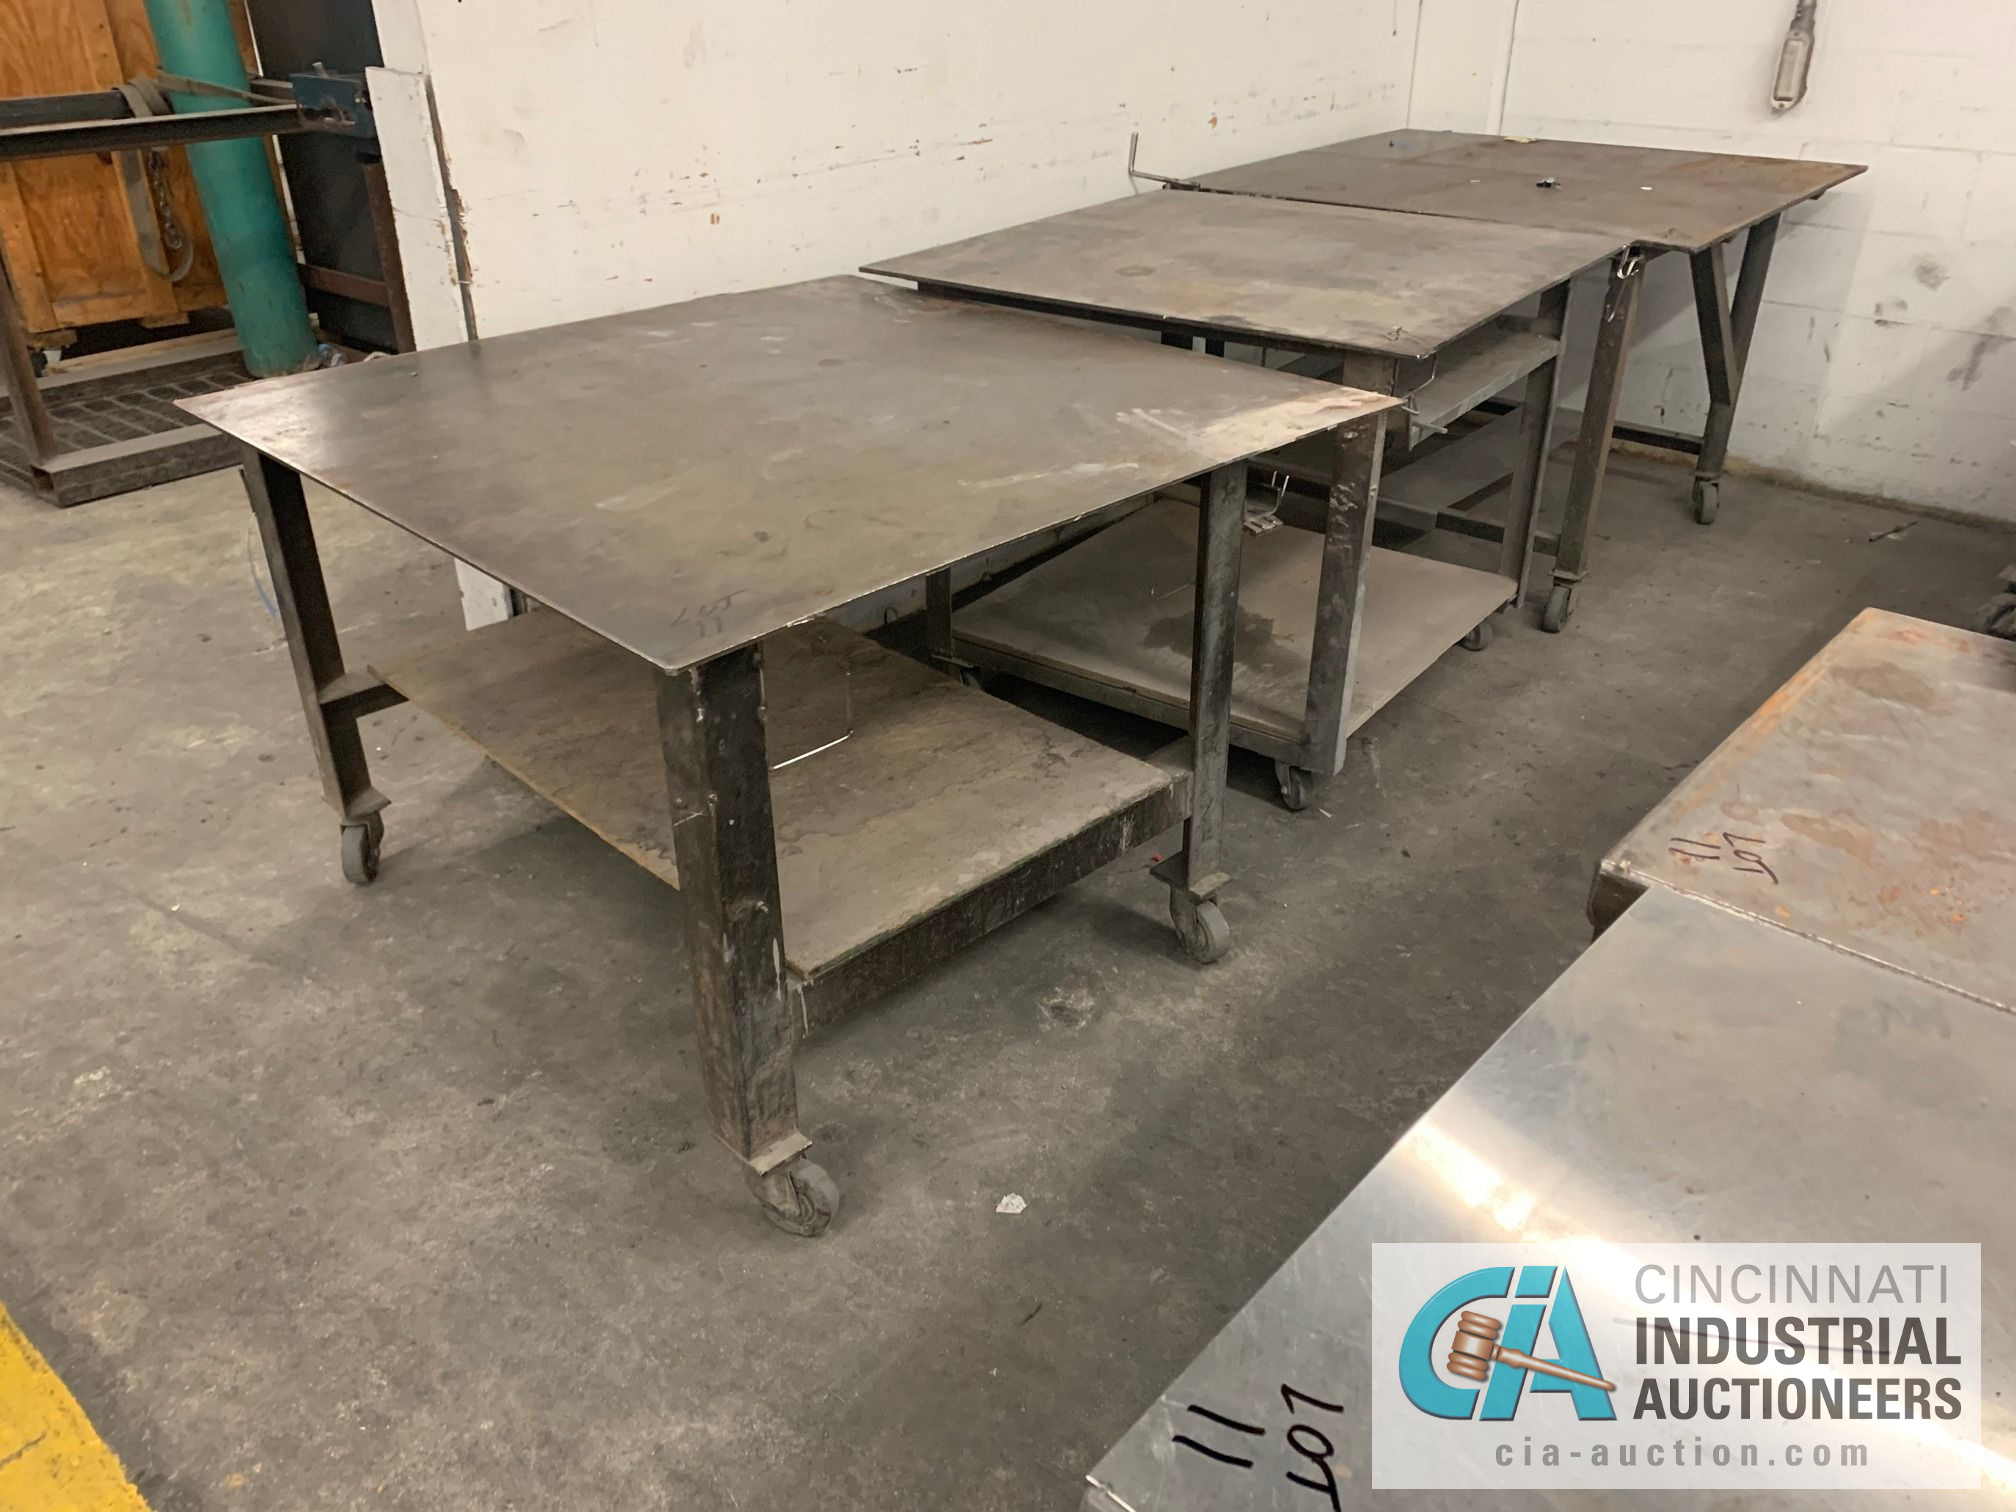 VARIOUS HEAVY DUTY CARTS, SOME SET-UP TO BE HEAVY WELD TABLES - Image 2 of 5